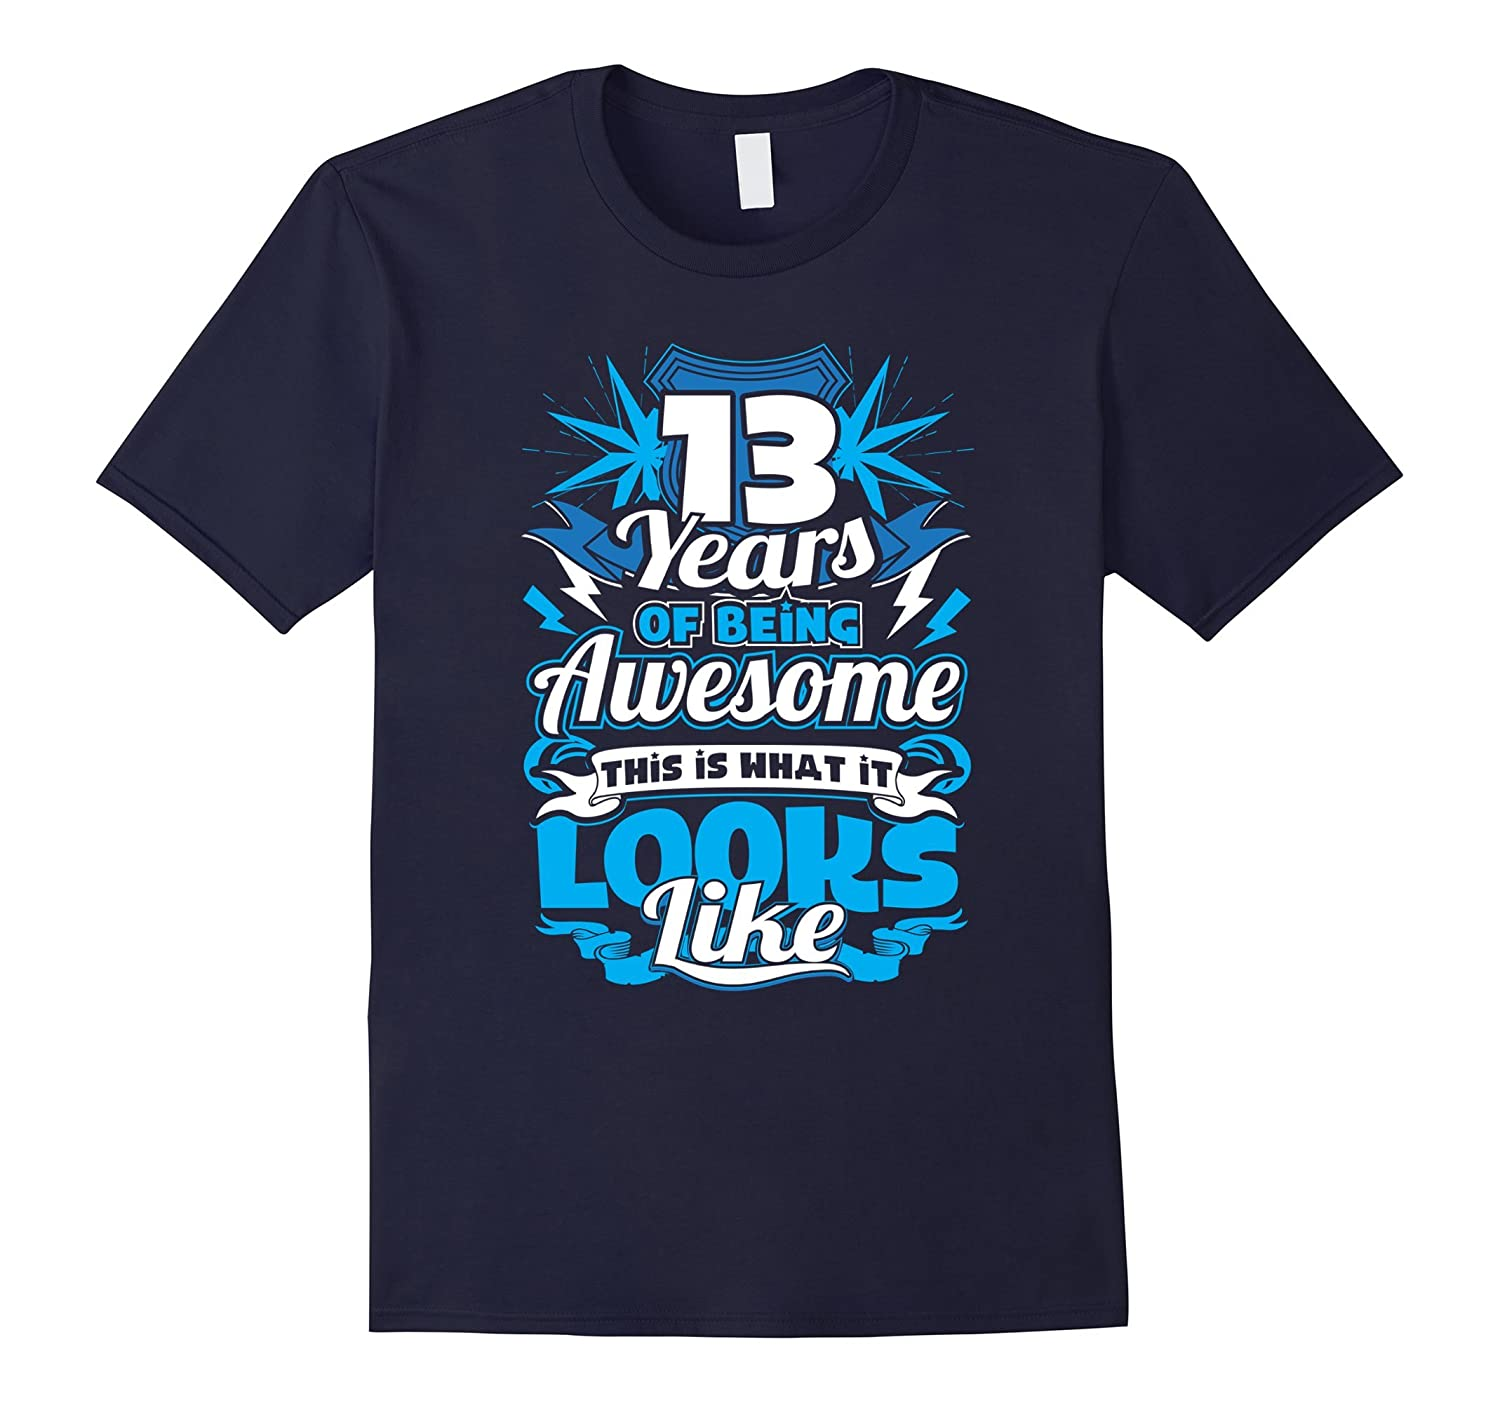 13th Birthday Shirts - 13 Years Of Being Awesome-TH